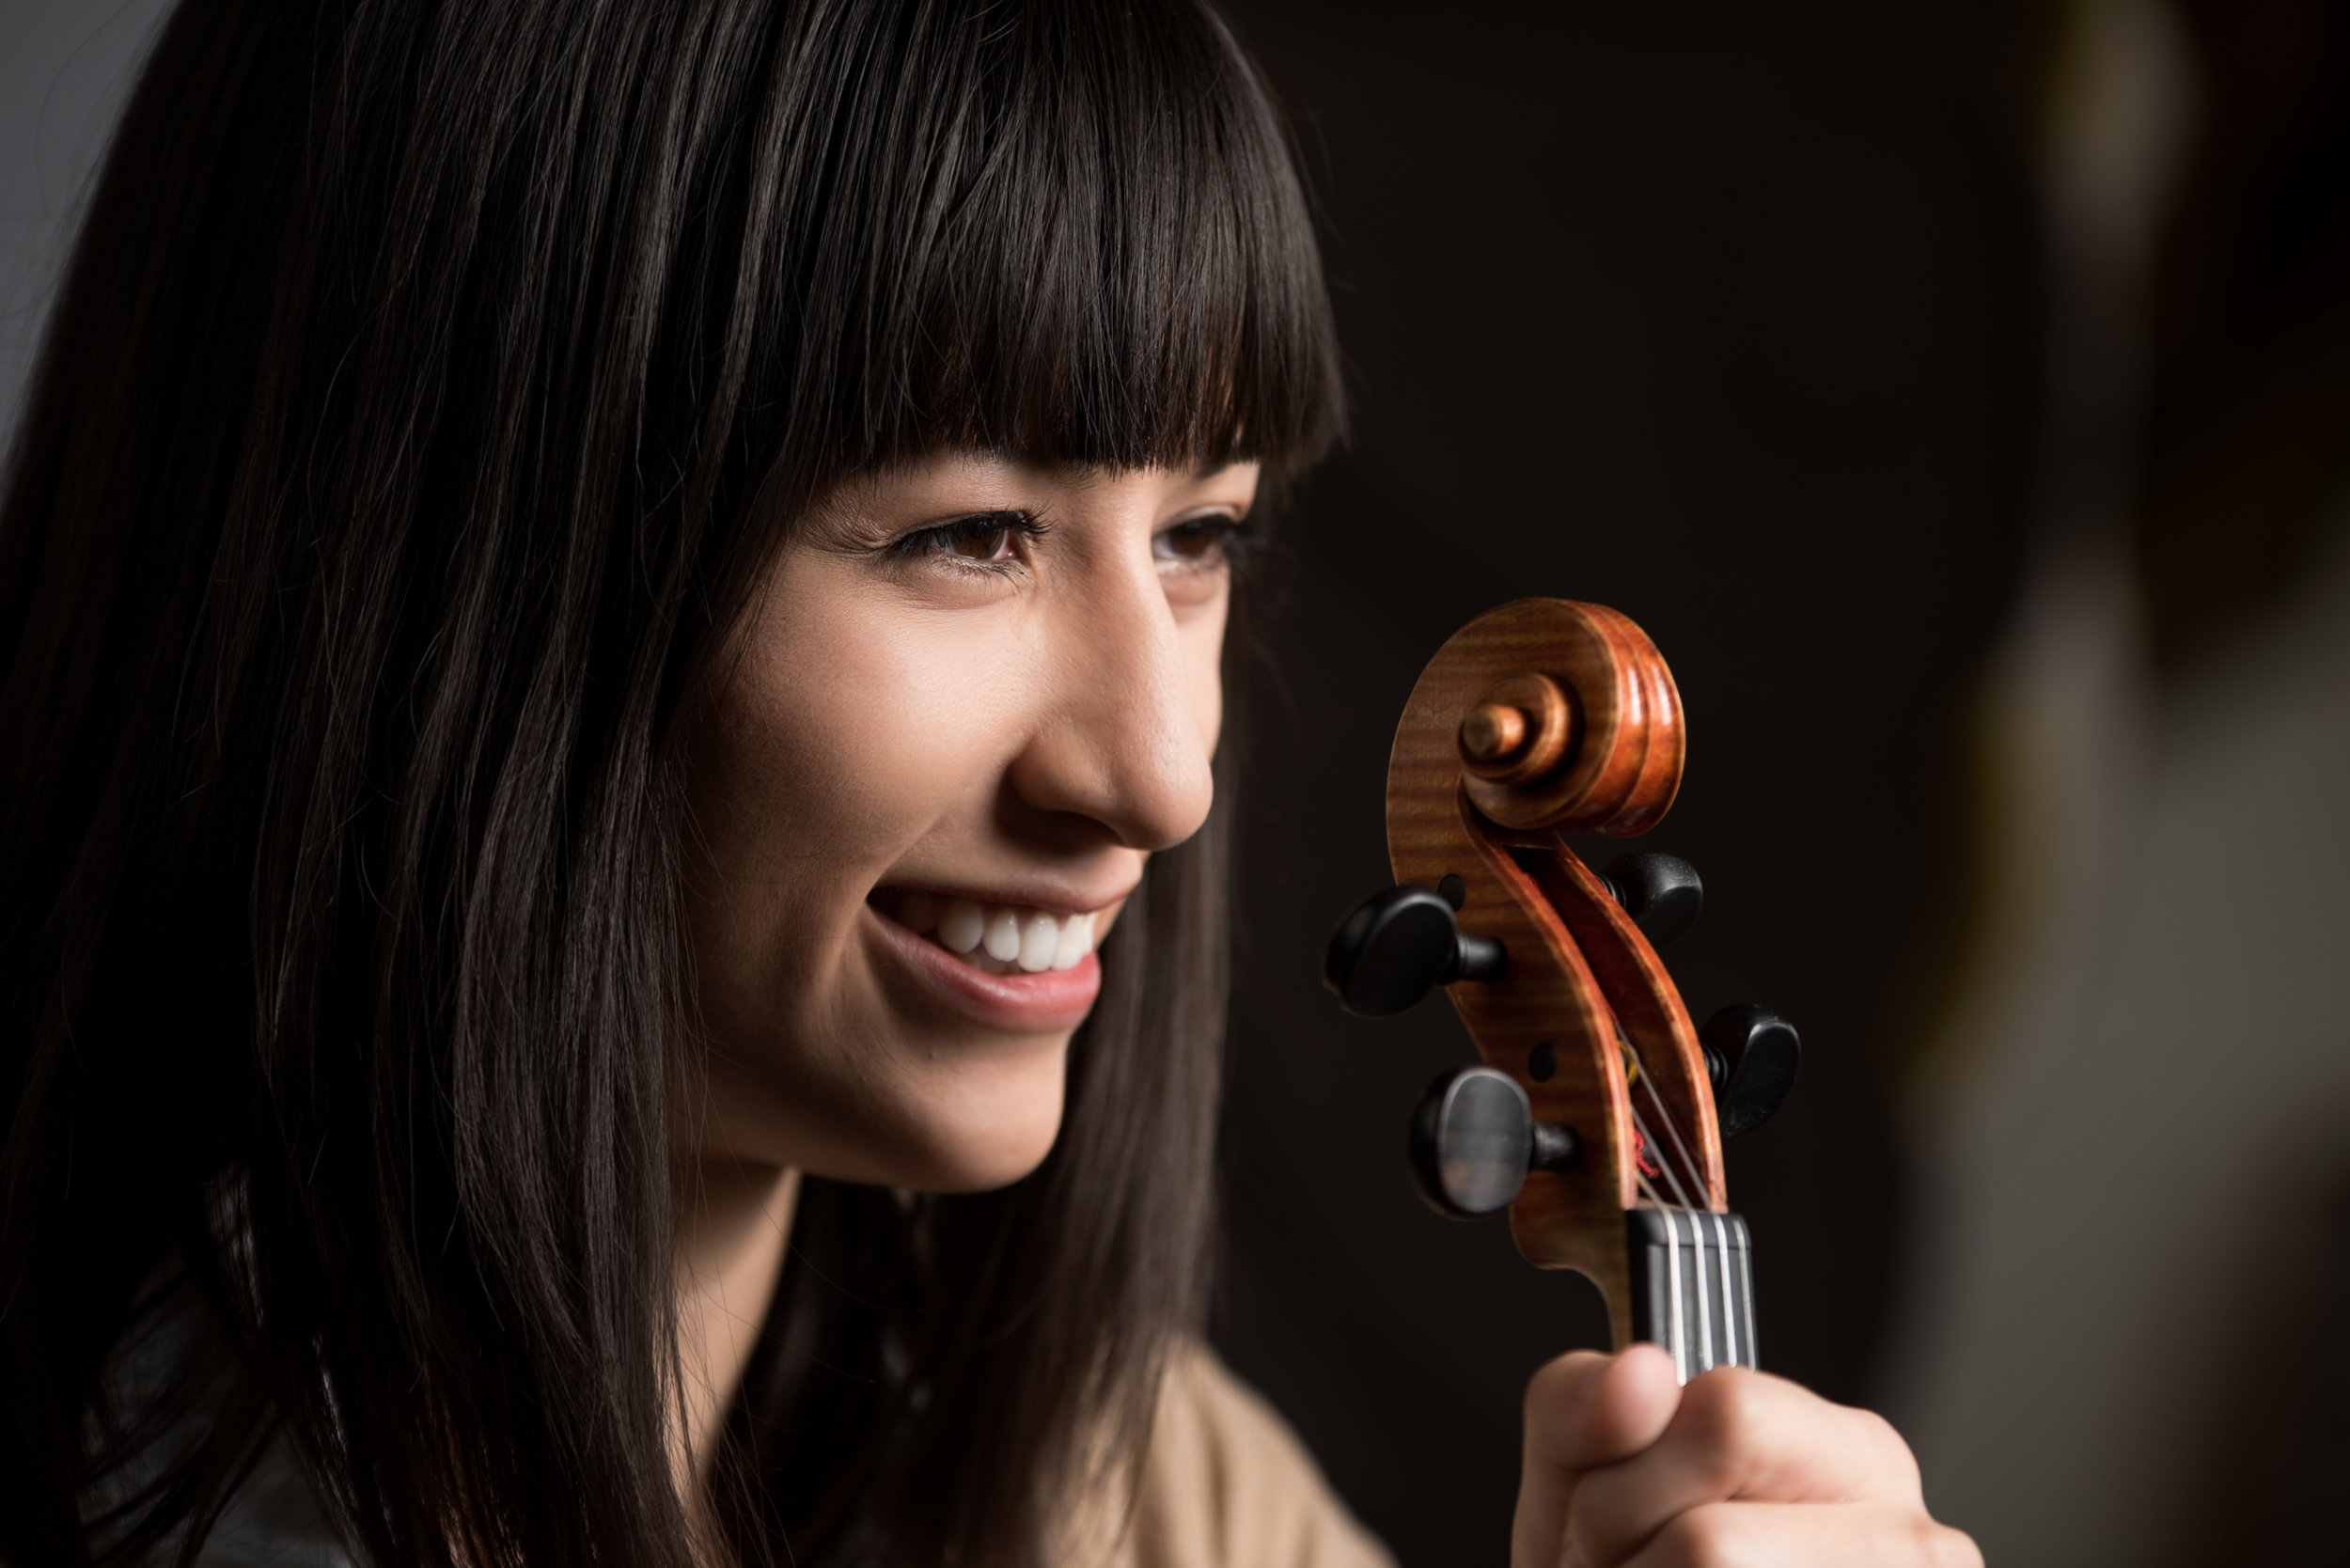 A Chicago native, violinist/violist  Lena Vidulich  is a bold and multi-faceted performer. She is a committed supporter of new music, and has worked with composers including Nina C. Young and Reiko Füting, among others. She is the co-founder and executive director of Amalgama and is a member of earspace (Raleigh, NC). In 2017, Lena was a member of the Spoleto Festival USA Orchestra and the Lucerne Festival Academy. She holds a Bachelor of Music in violin performance, with a minor in French, from Northwestern University, where she was a student of Gerardo Ribeiro. Her education also included studies with Alexis Galpérine at the Conservatoire national supérieur de musique de Paris and Université de Paris 8 – Vincennes-St Denis. Lena is recently received her master's degree in contemporary violin performance at the Manhattan School of Music, where she is a recipient of the President's Award in the studio of Curtis Macomber.